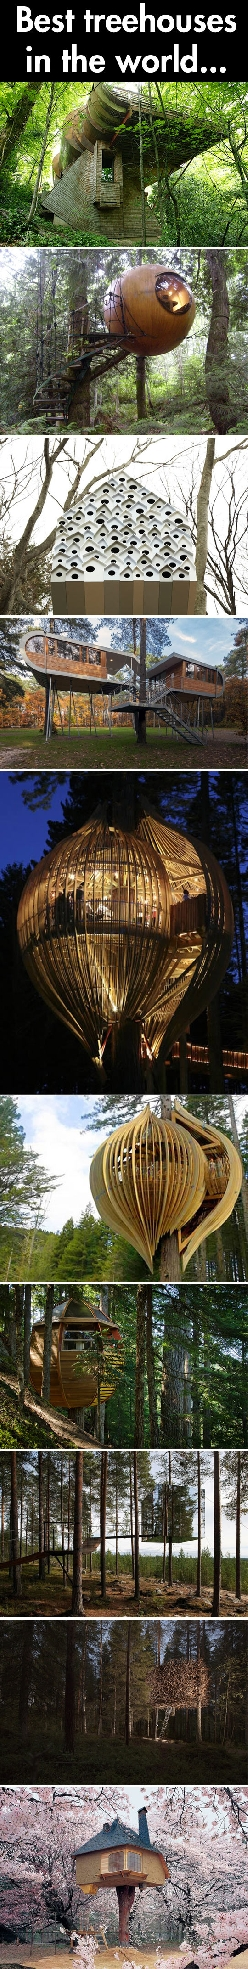 Tree houses of the world